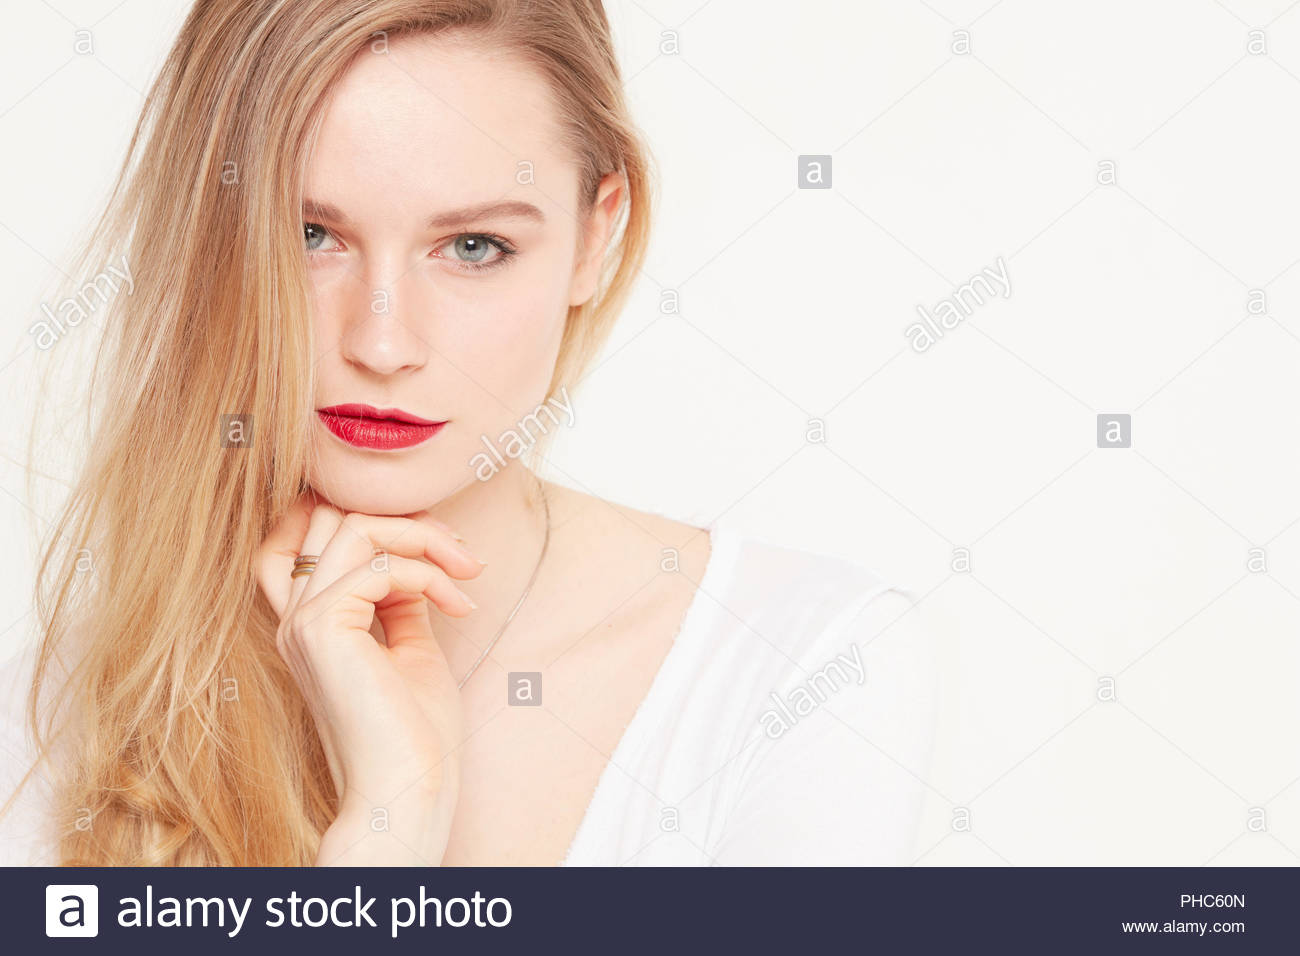 Portrait of young woman wearing red lipstick Stock Photo